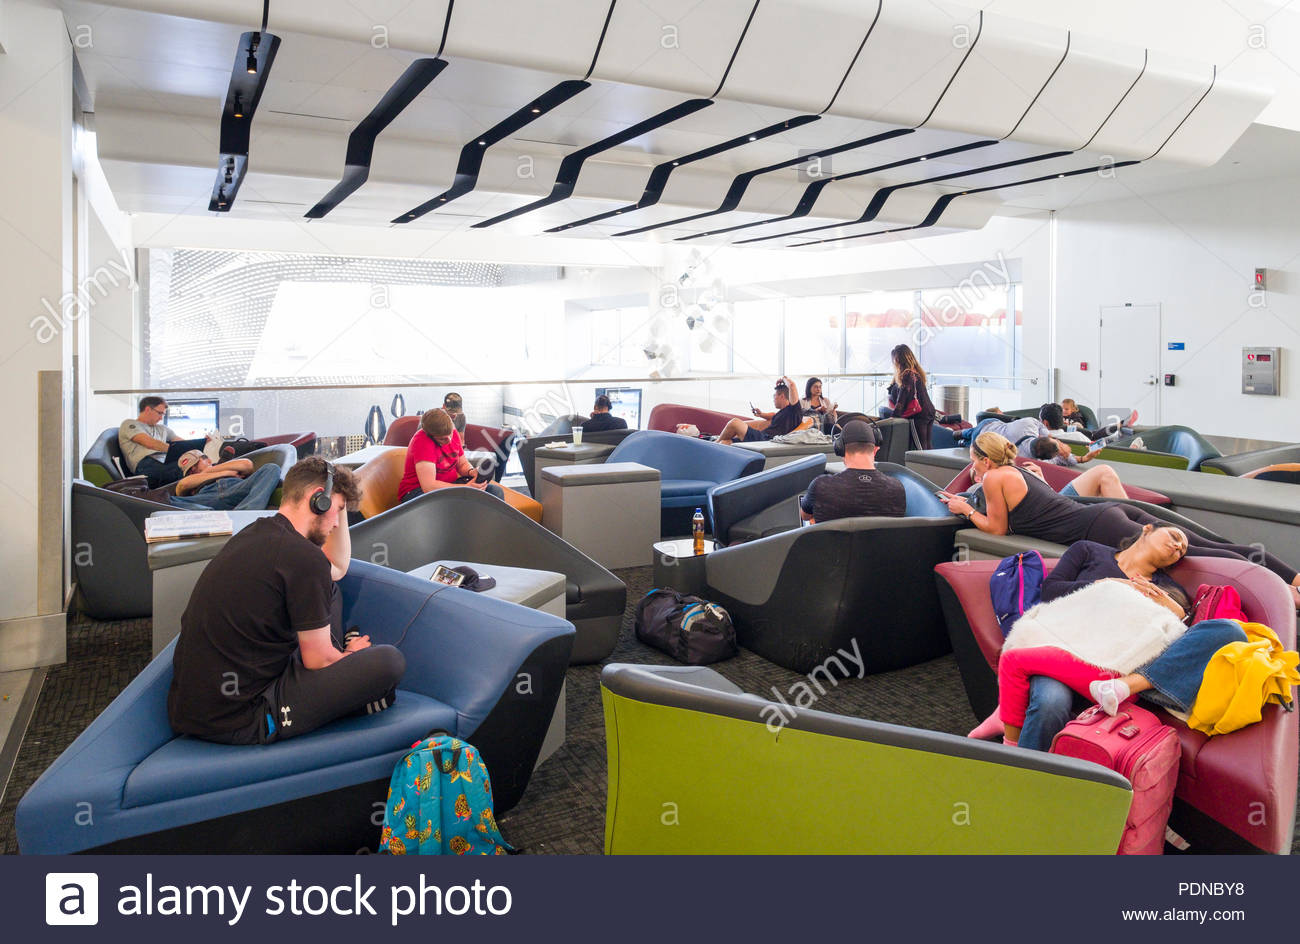 Passengers resting on sofas in Terminal 2, Los Angeles International Airport, Los Angeles, California, USA - Stock Image